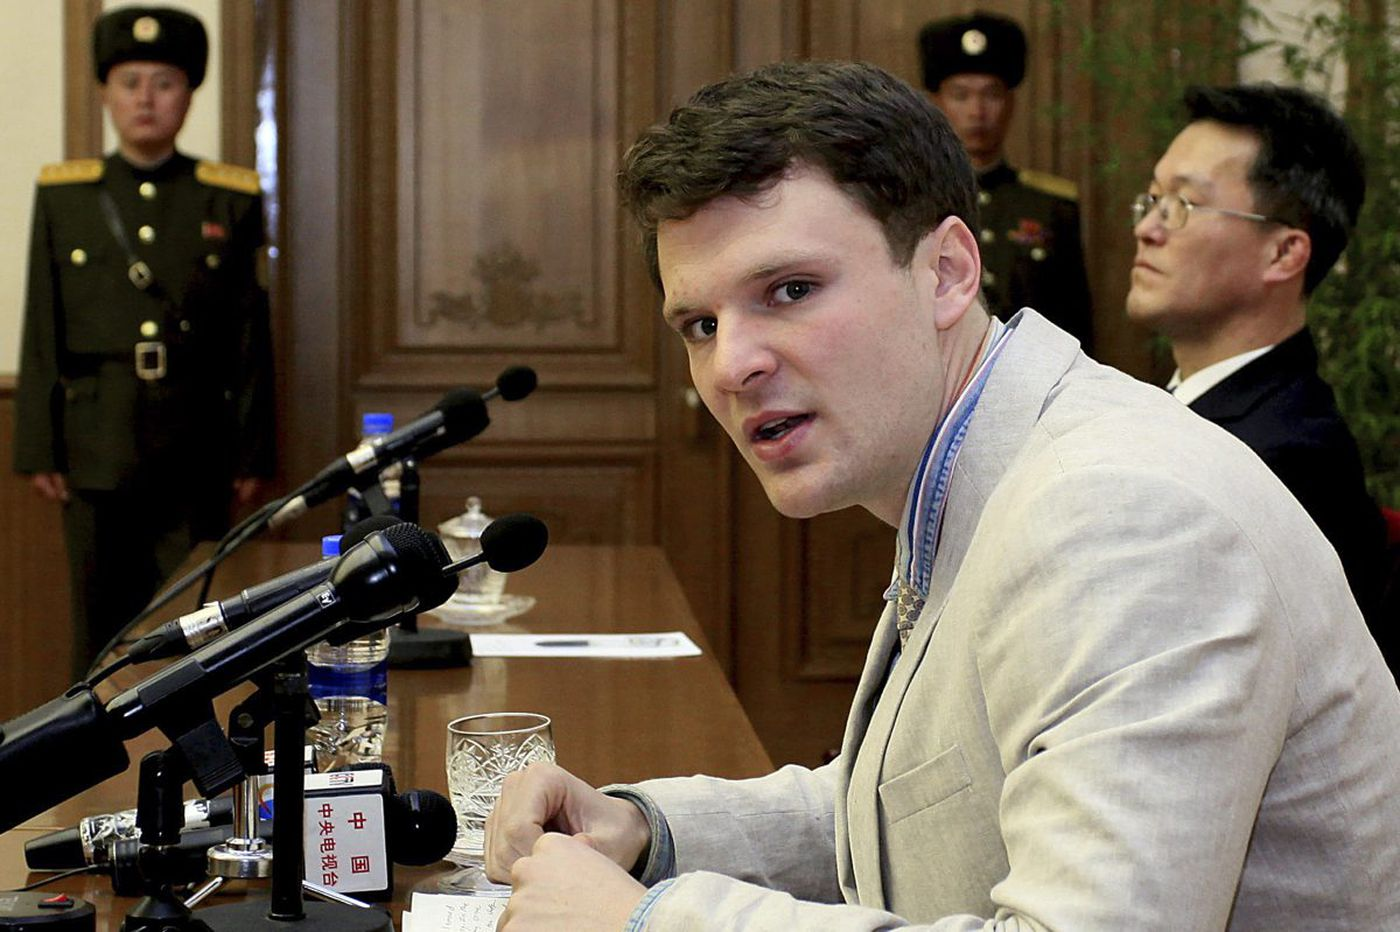 U. Delaware will not rehire prof who made critical comments about Otto Warmbier after his death